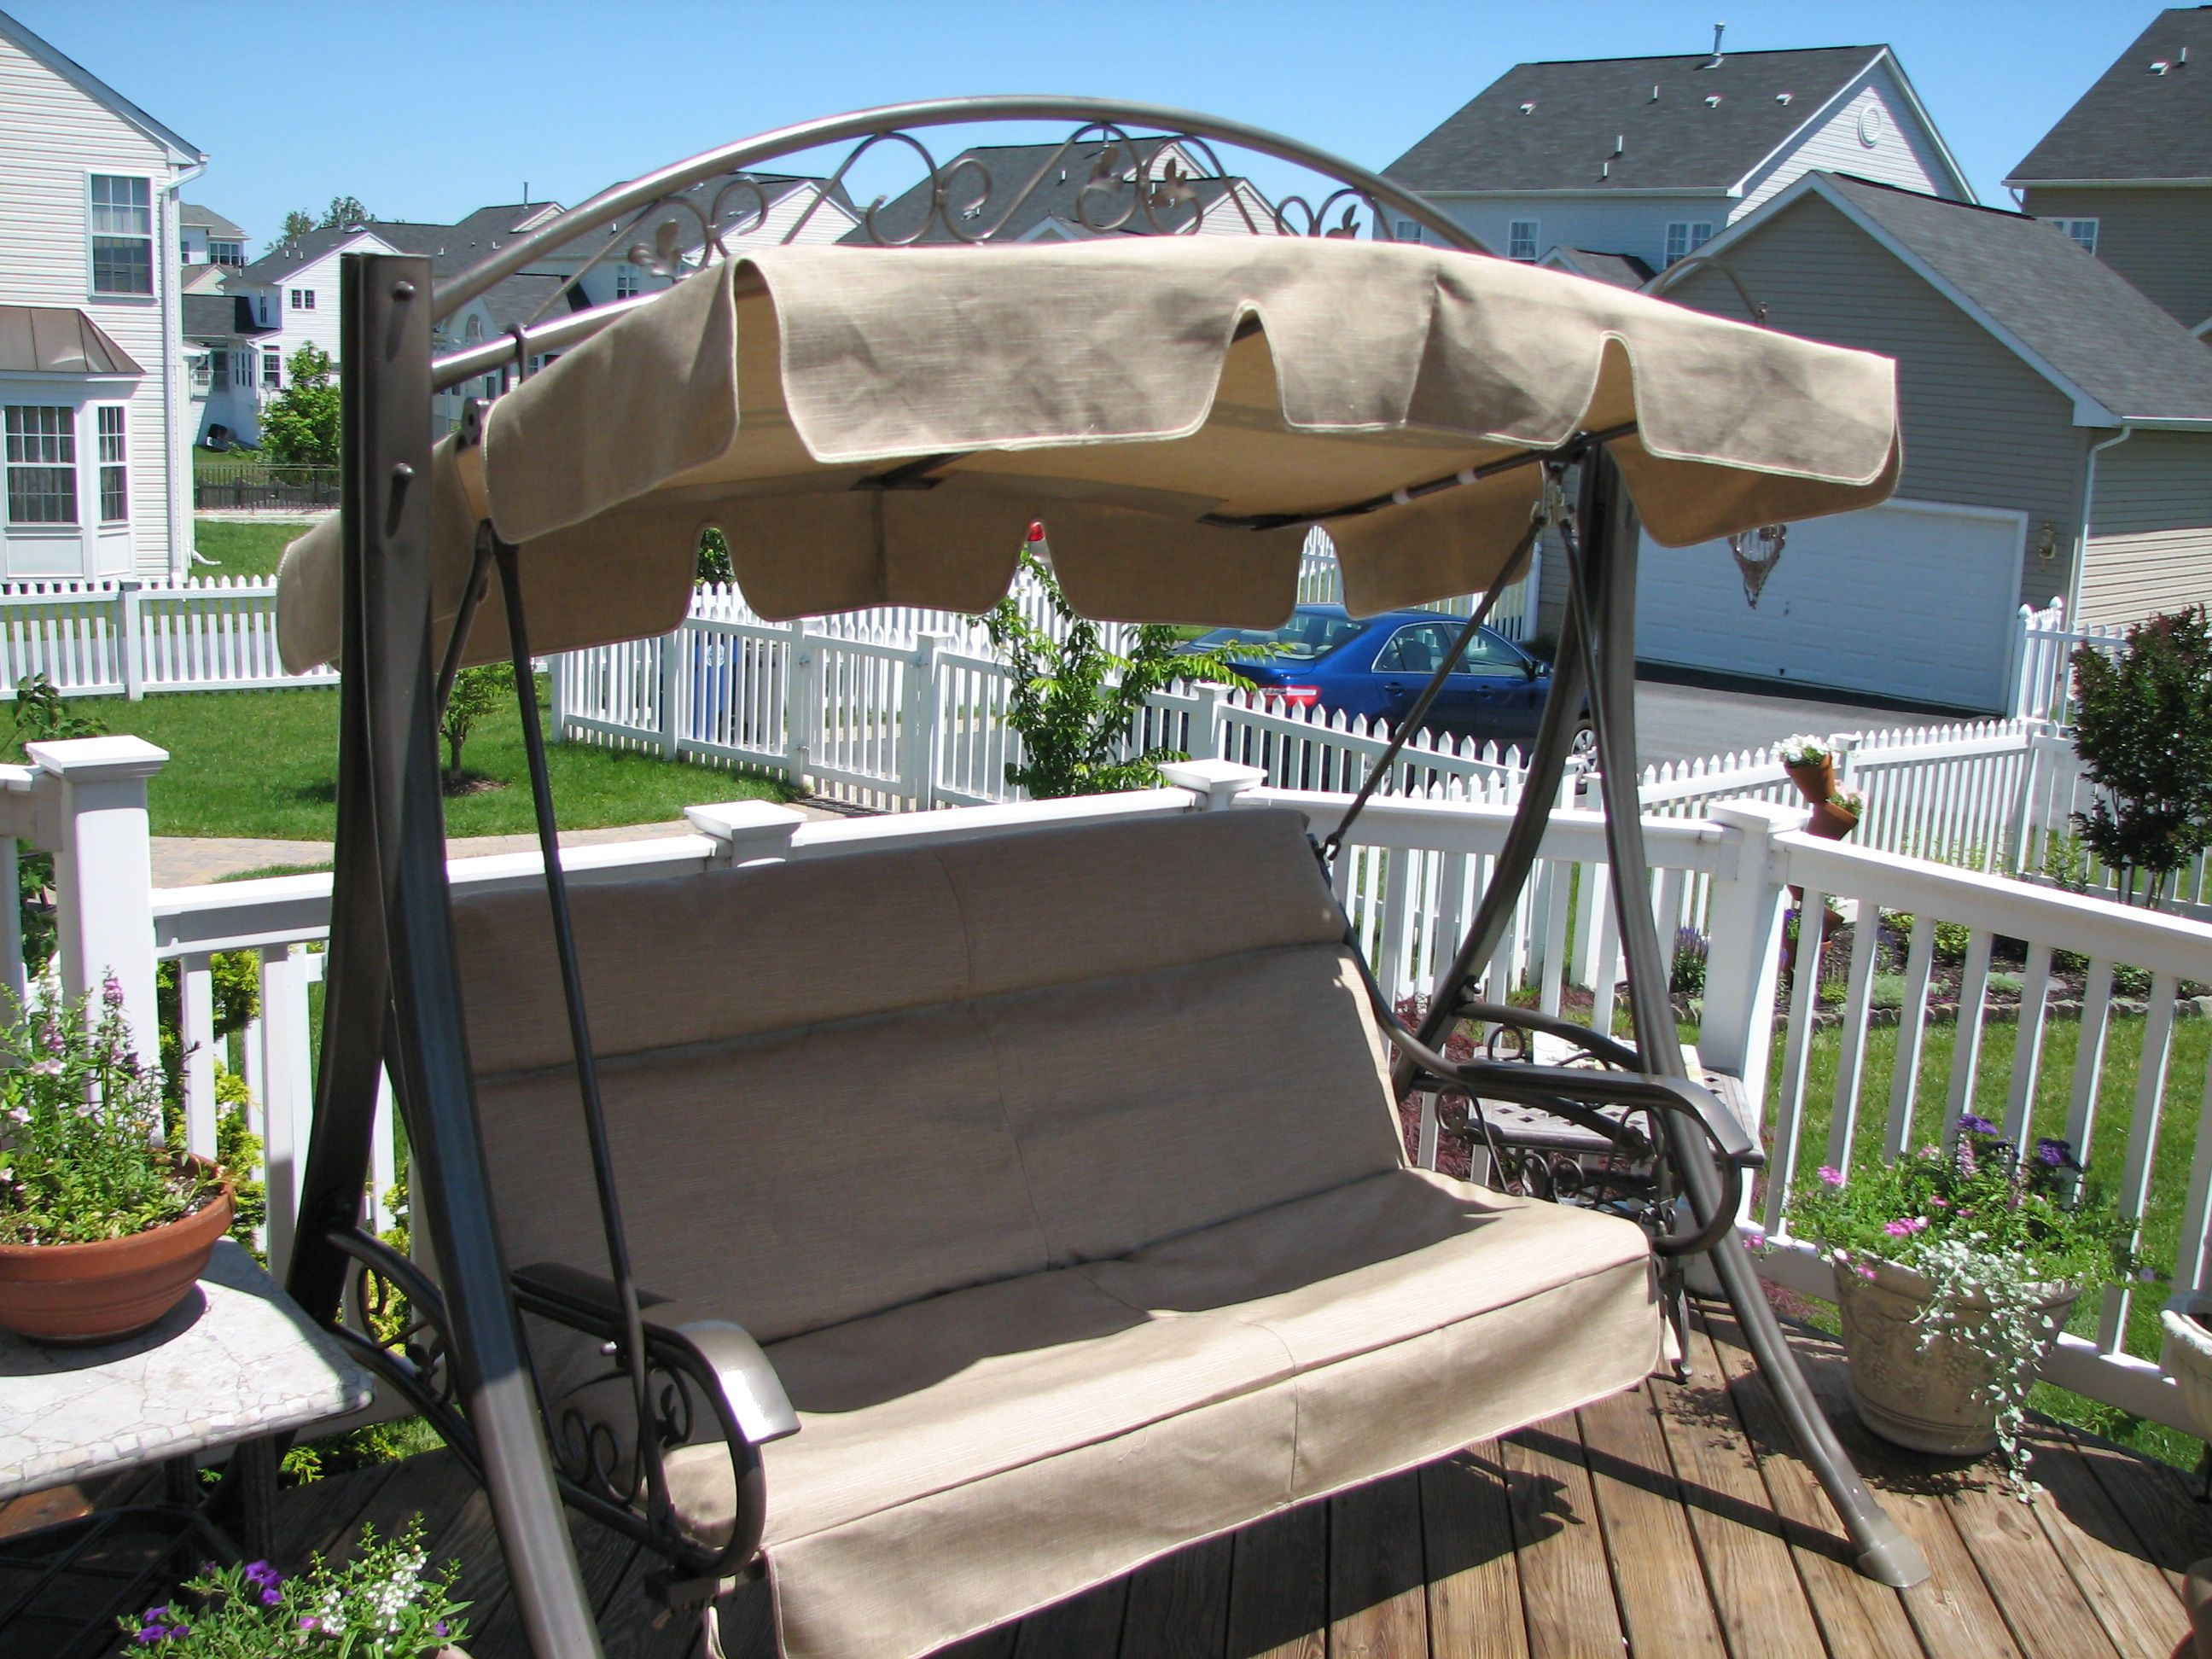 Costco Patio Swing Refurbished - Heather Beige Canopy $165 Cushion Cover $304. Sunbrella fabric & Costco Patio Swing Refurbished - Heather Beige Canopy $165 ...